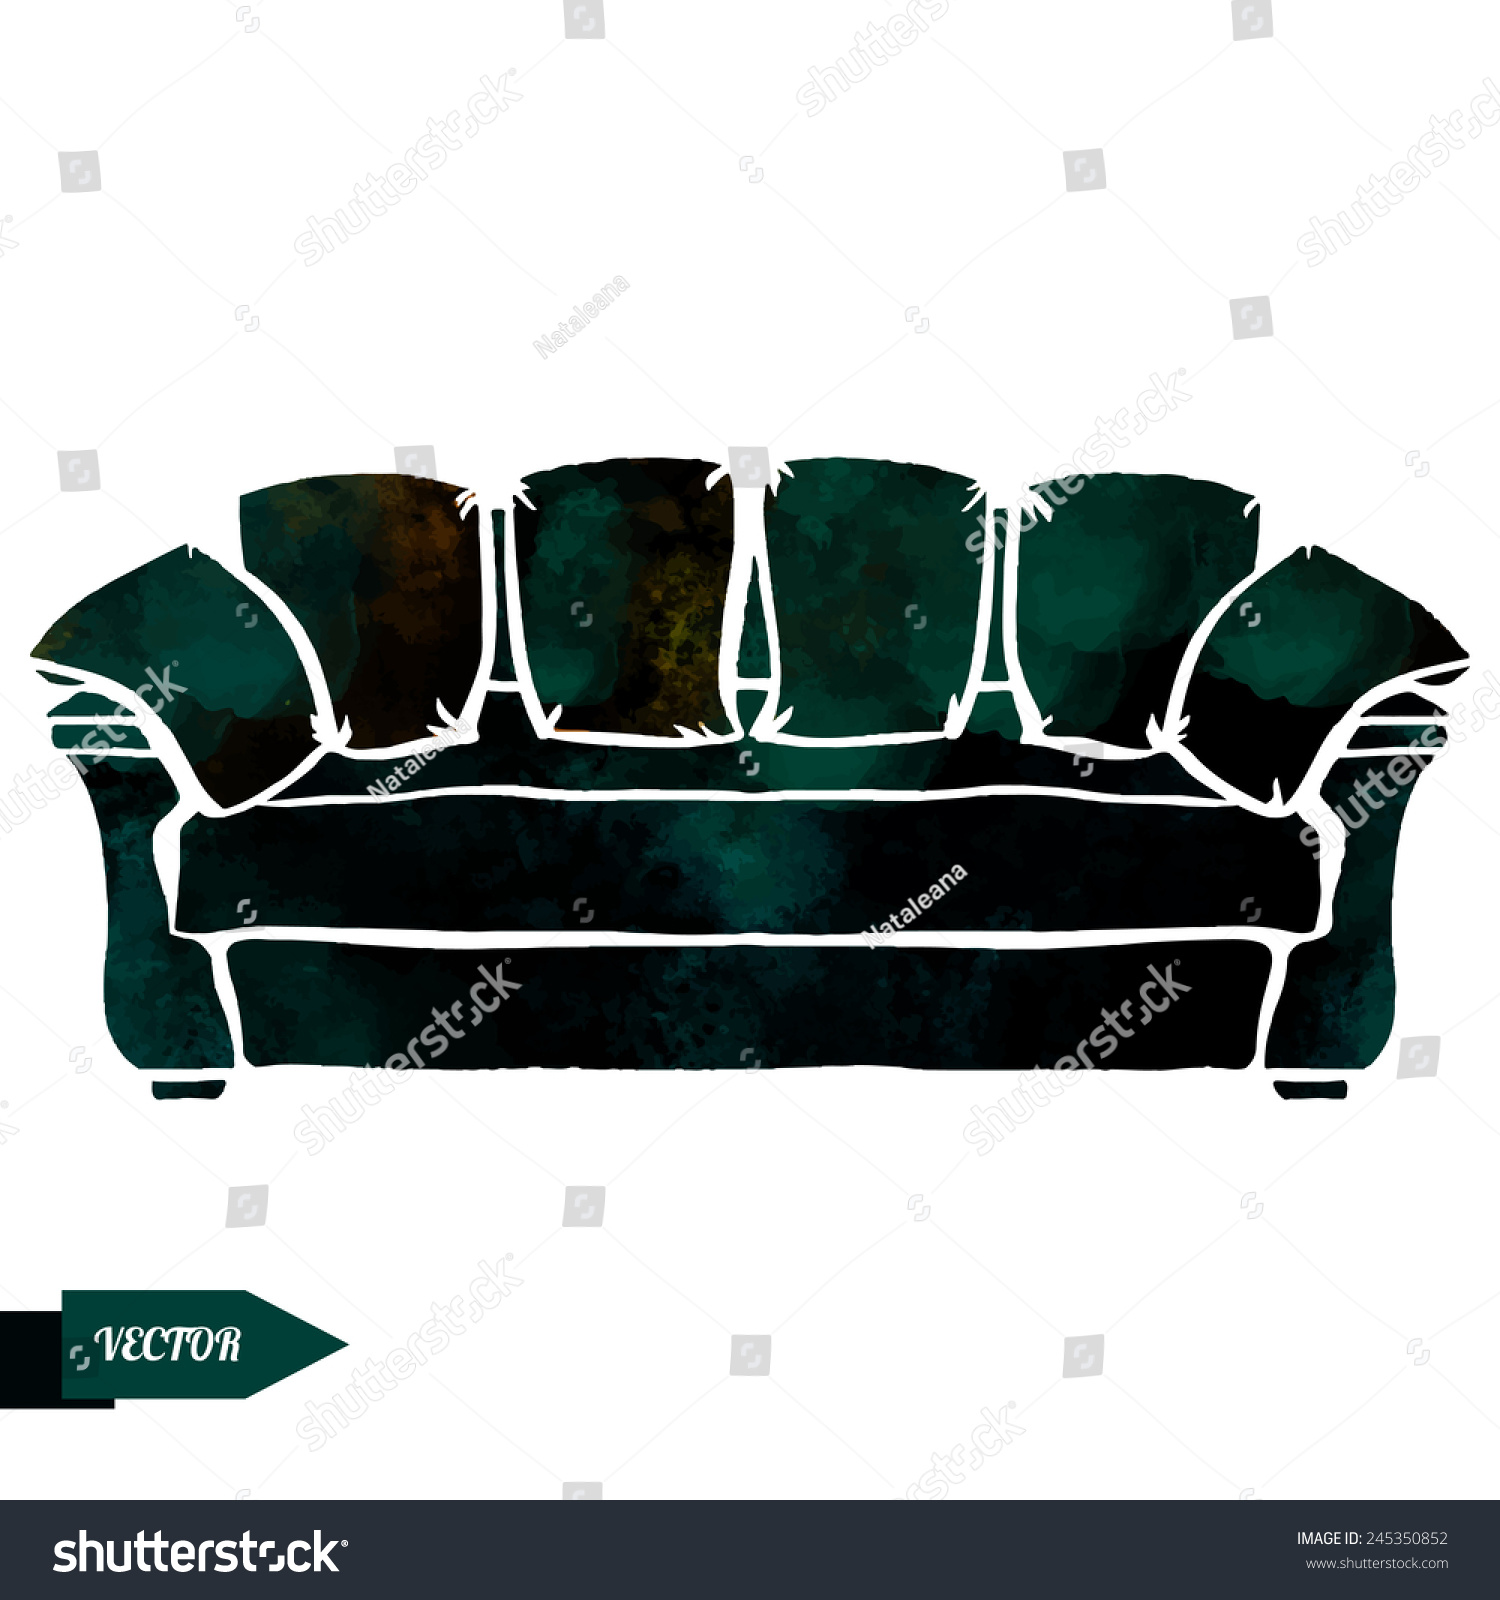 https://image.shutterstock.com/z/stock-vector-watercolor-modern-black-leather-sofa-with-pillows-closeup-isolated-on-a-white-background-245350852.jpg